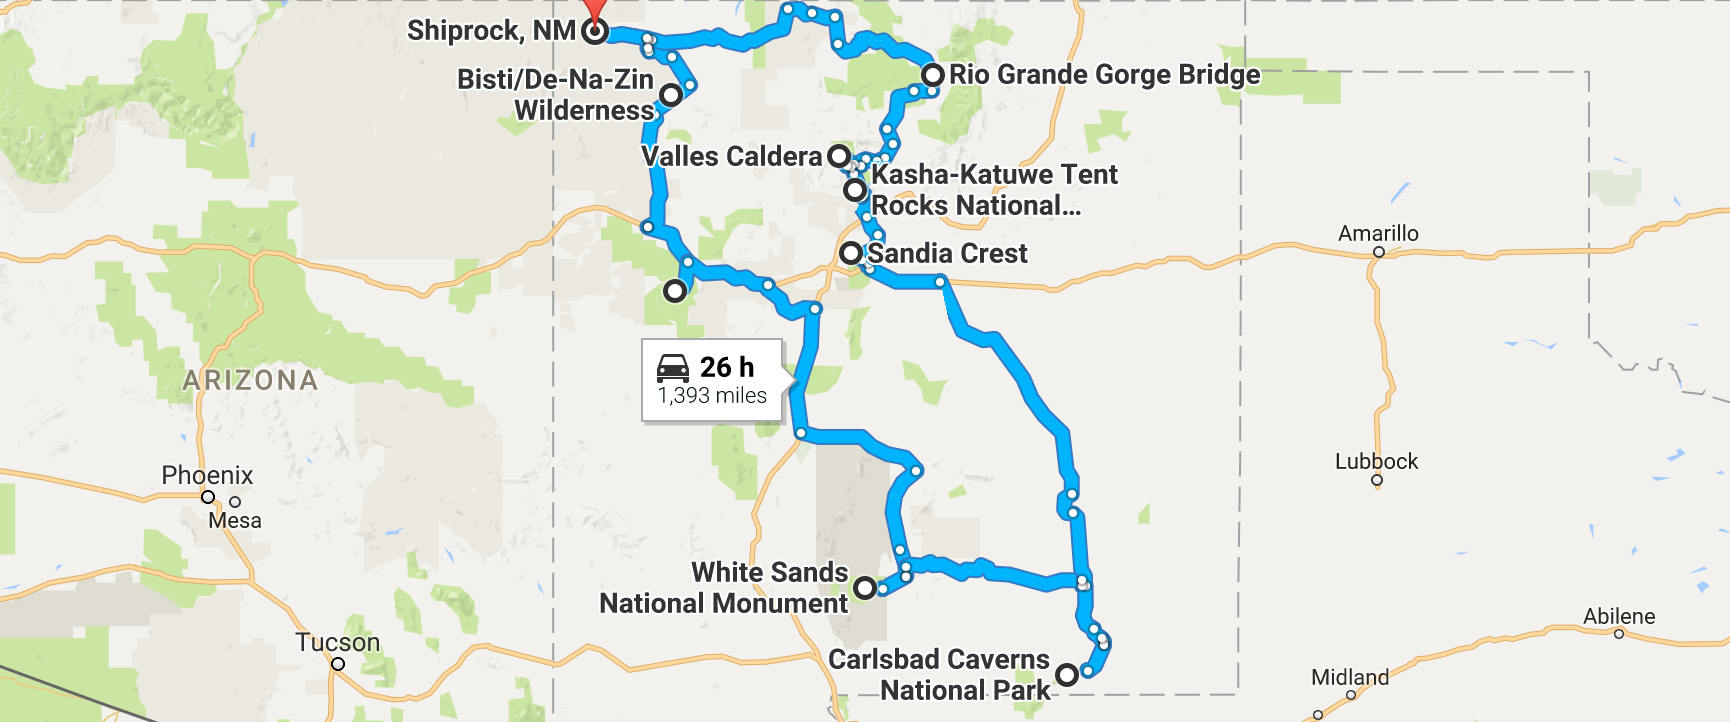 Take This Road Trip To See 9 Natural Wonders Of New Mexico